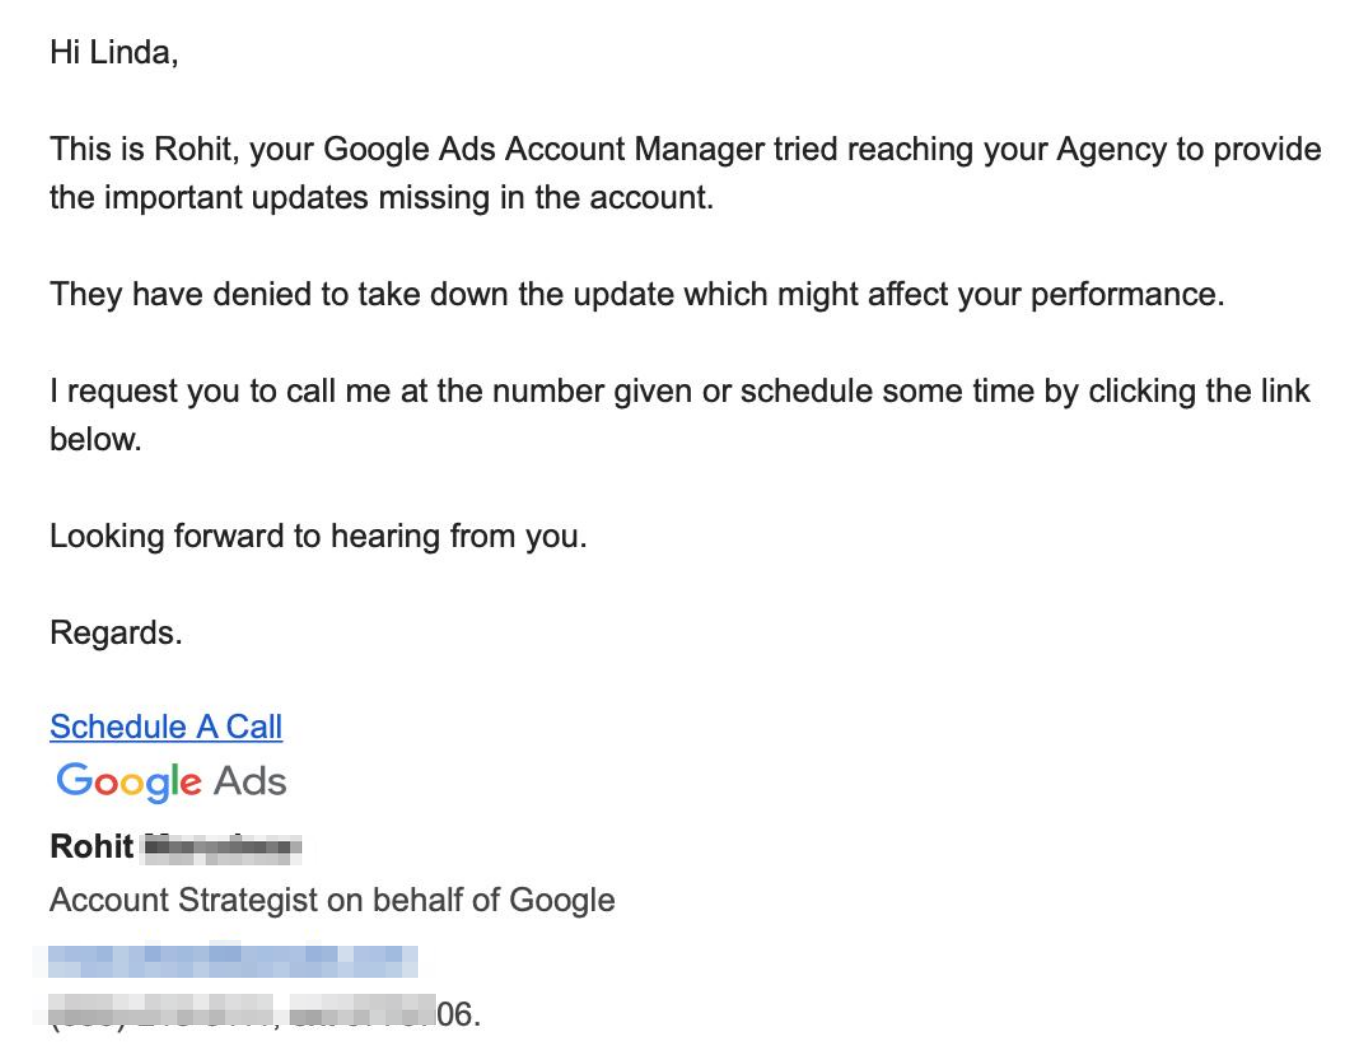 Be wary of getting emails from 'Google Ads reps' saying they need to fix issues in your Google ads accounts